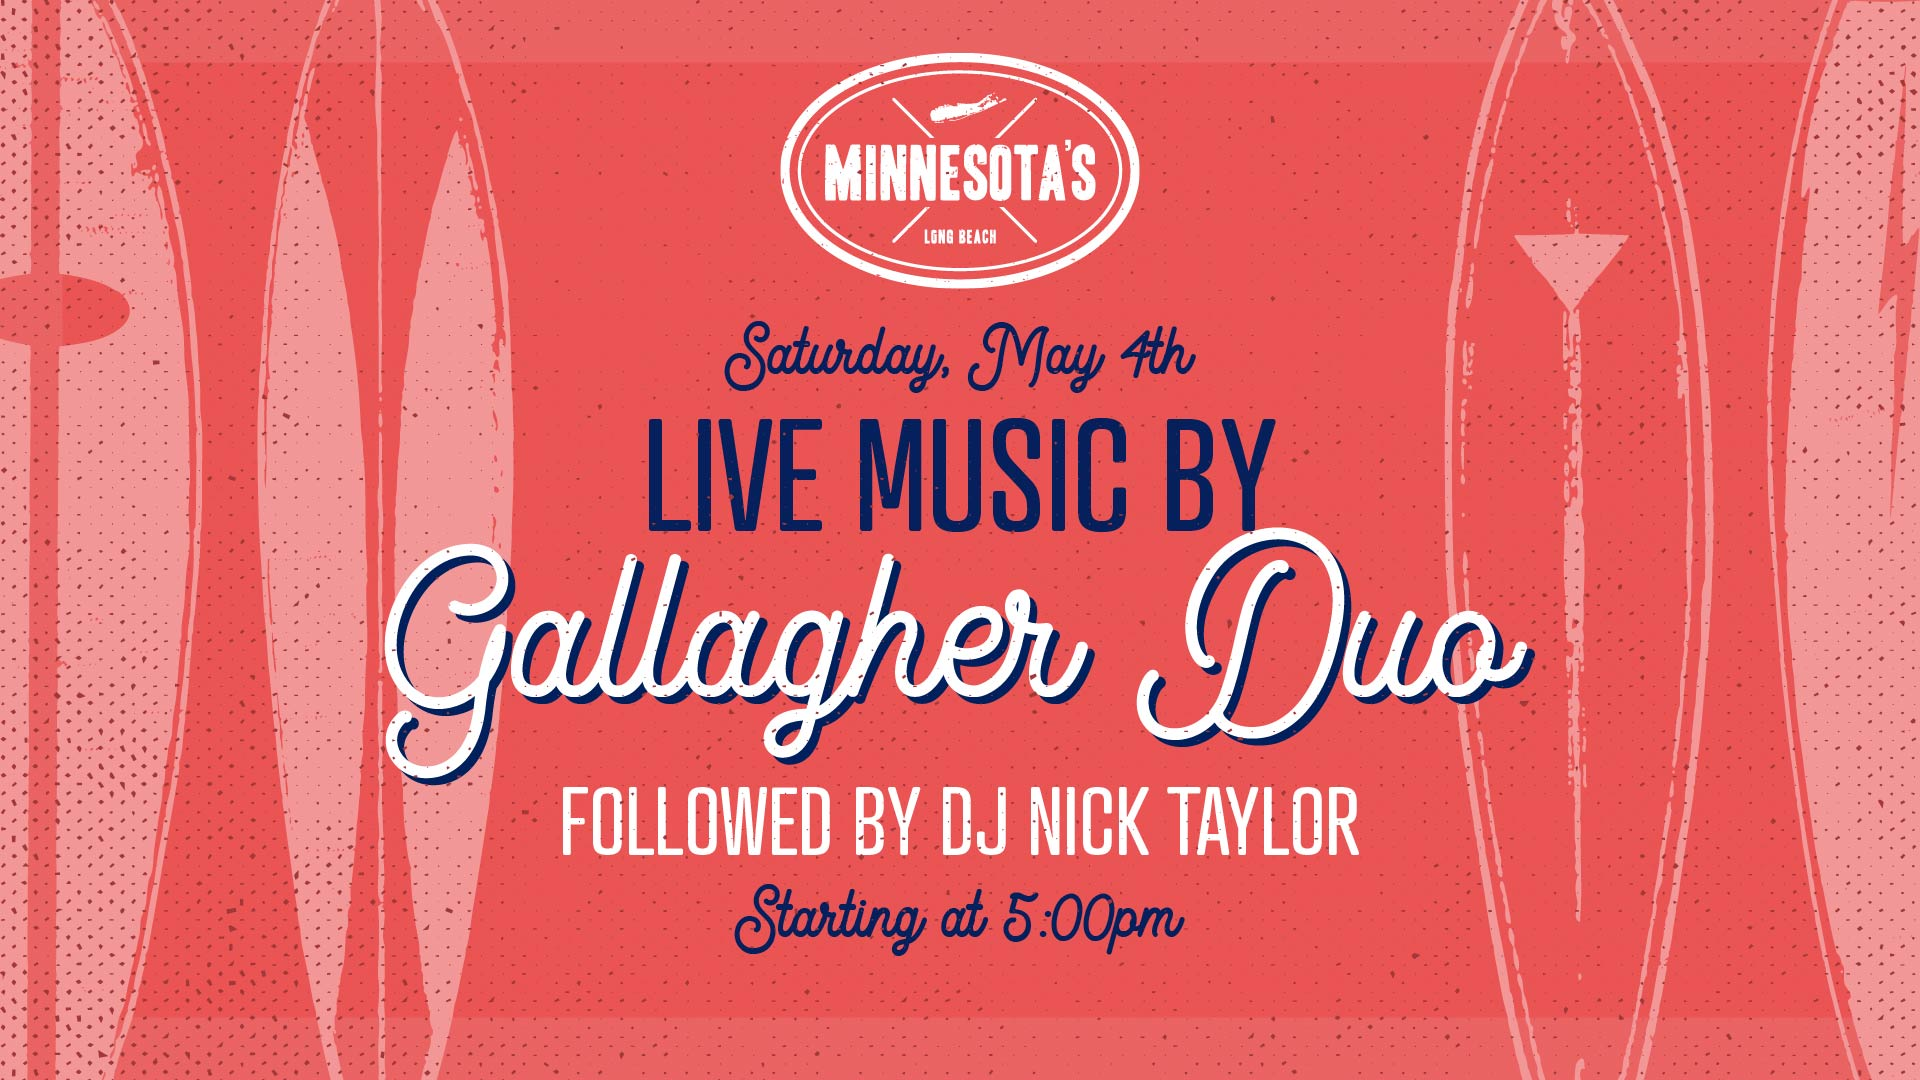 flyer for live music by gallagher duo at minnesota's on may 4th at 5pm